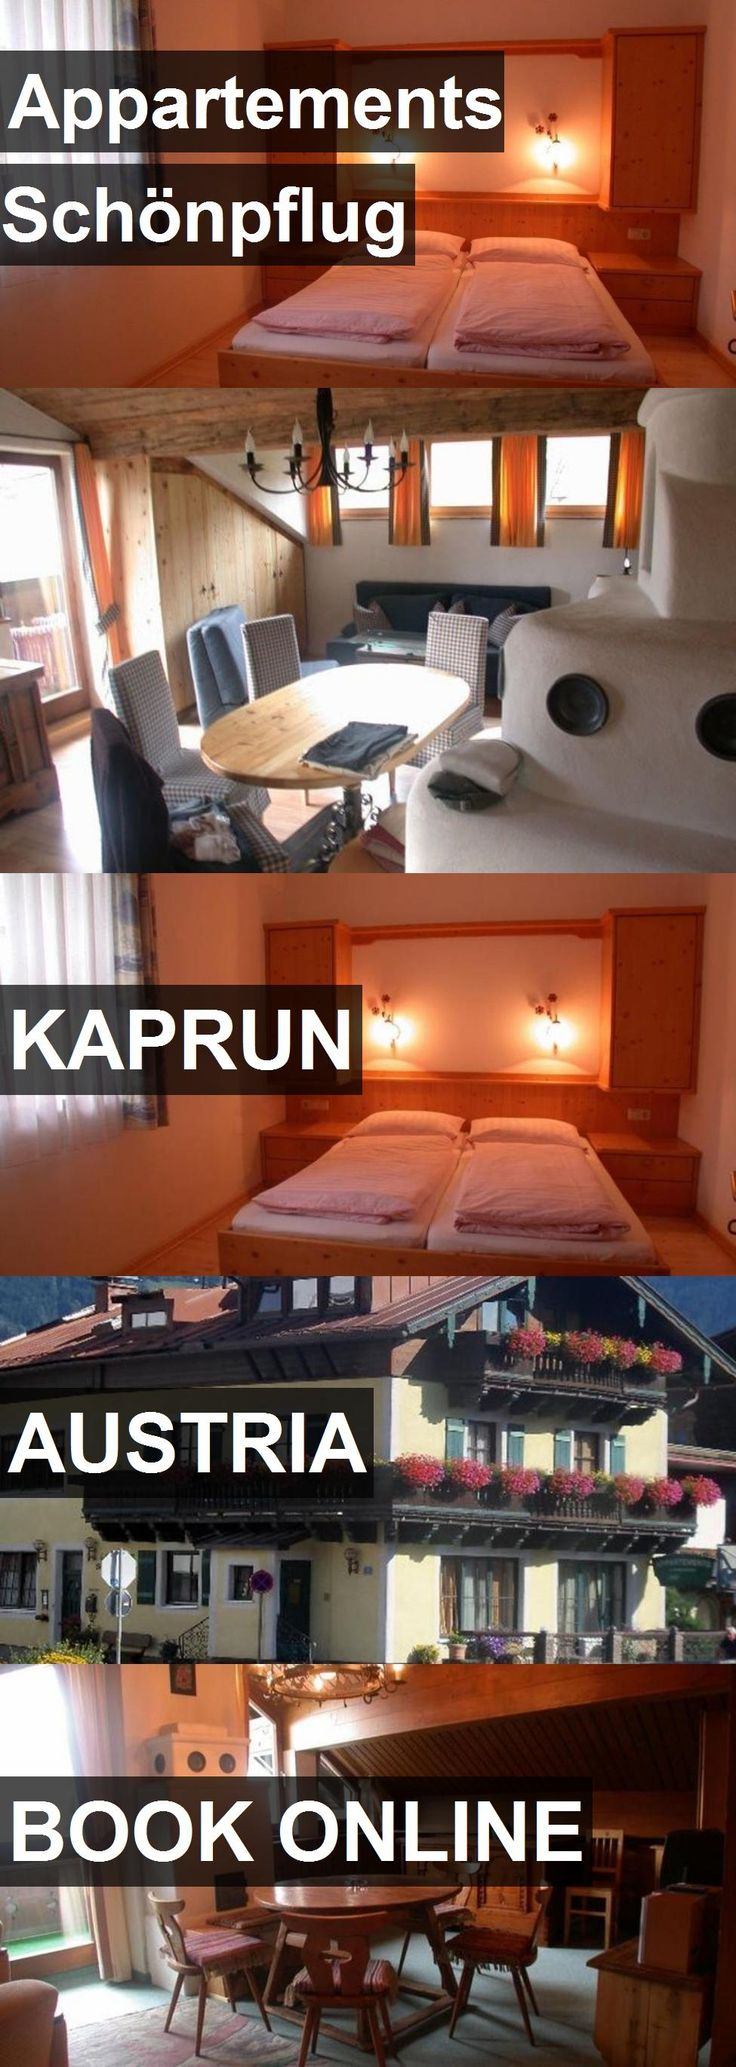 Hotel Appartements Schönpflug in Kaprun, Austria. For more information, photos, reviews and best prices please follow the link. #Austria #Kaprun #travel #vacation #hotel